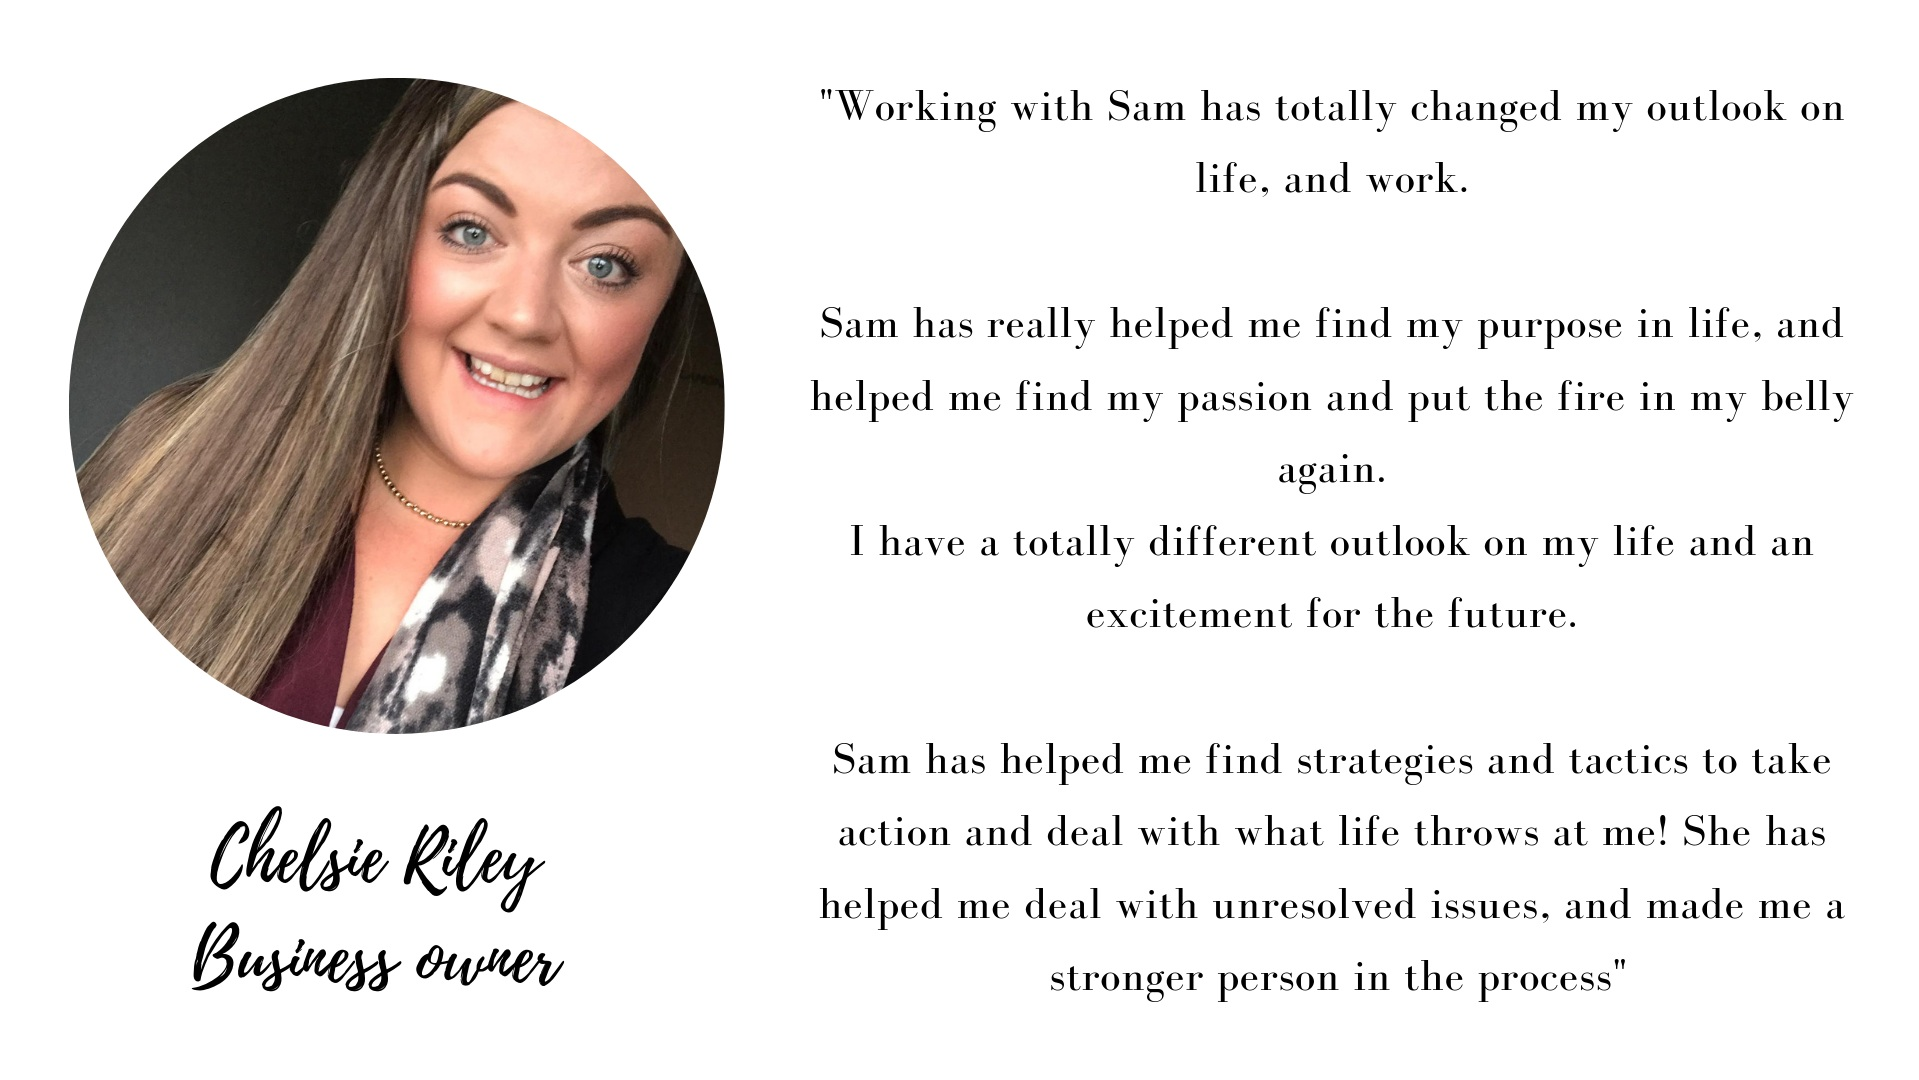 Working with Sam has totally changed my outlook on life, and work. Sam has really helped me find my purpose in life, and helped me find my passion and fire in my belly again. I have a totally different outlook on my .png